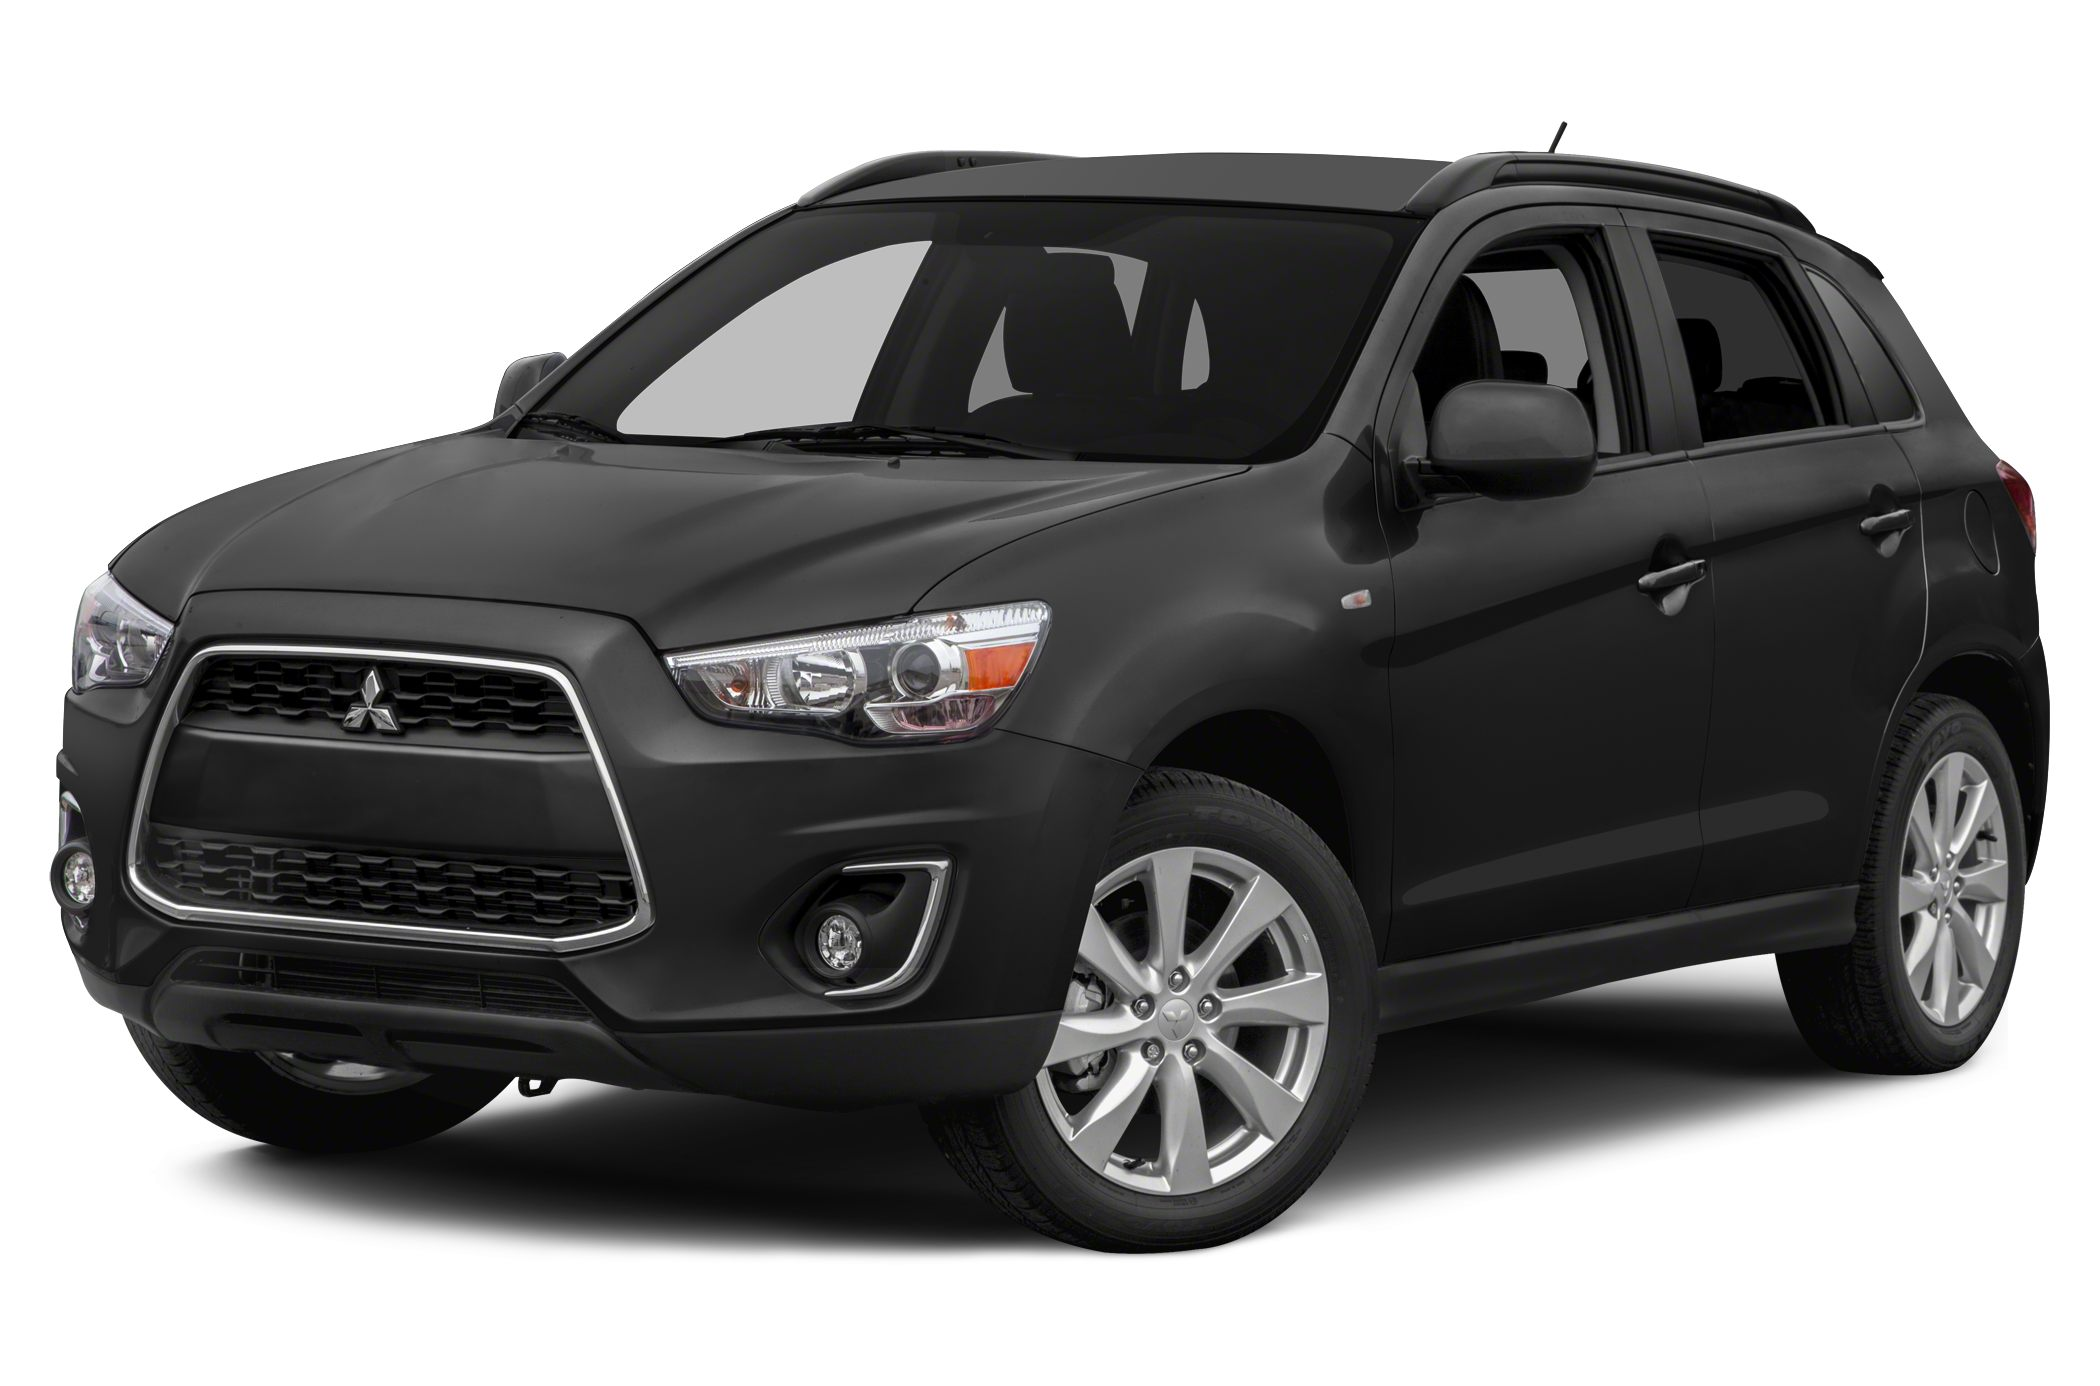 2014 Mitsubishi Outlander Sport SE SUV for sale in Chandler for $23,988 with 2,667 miles